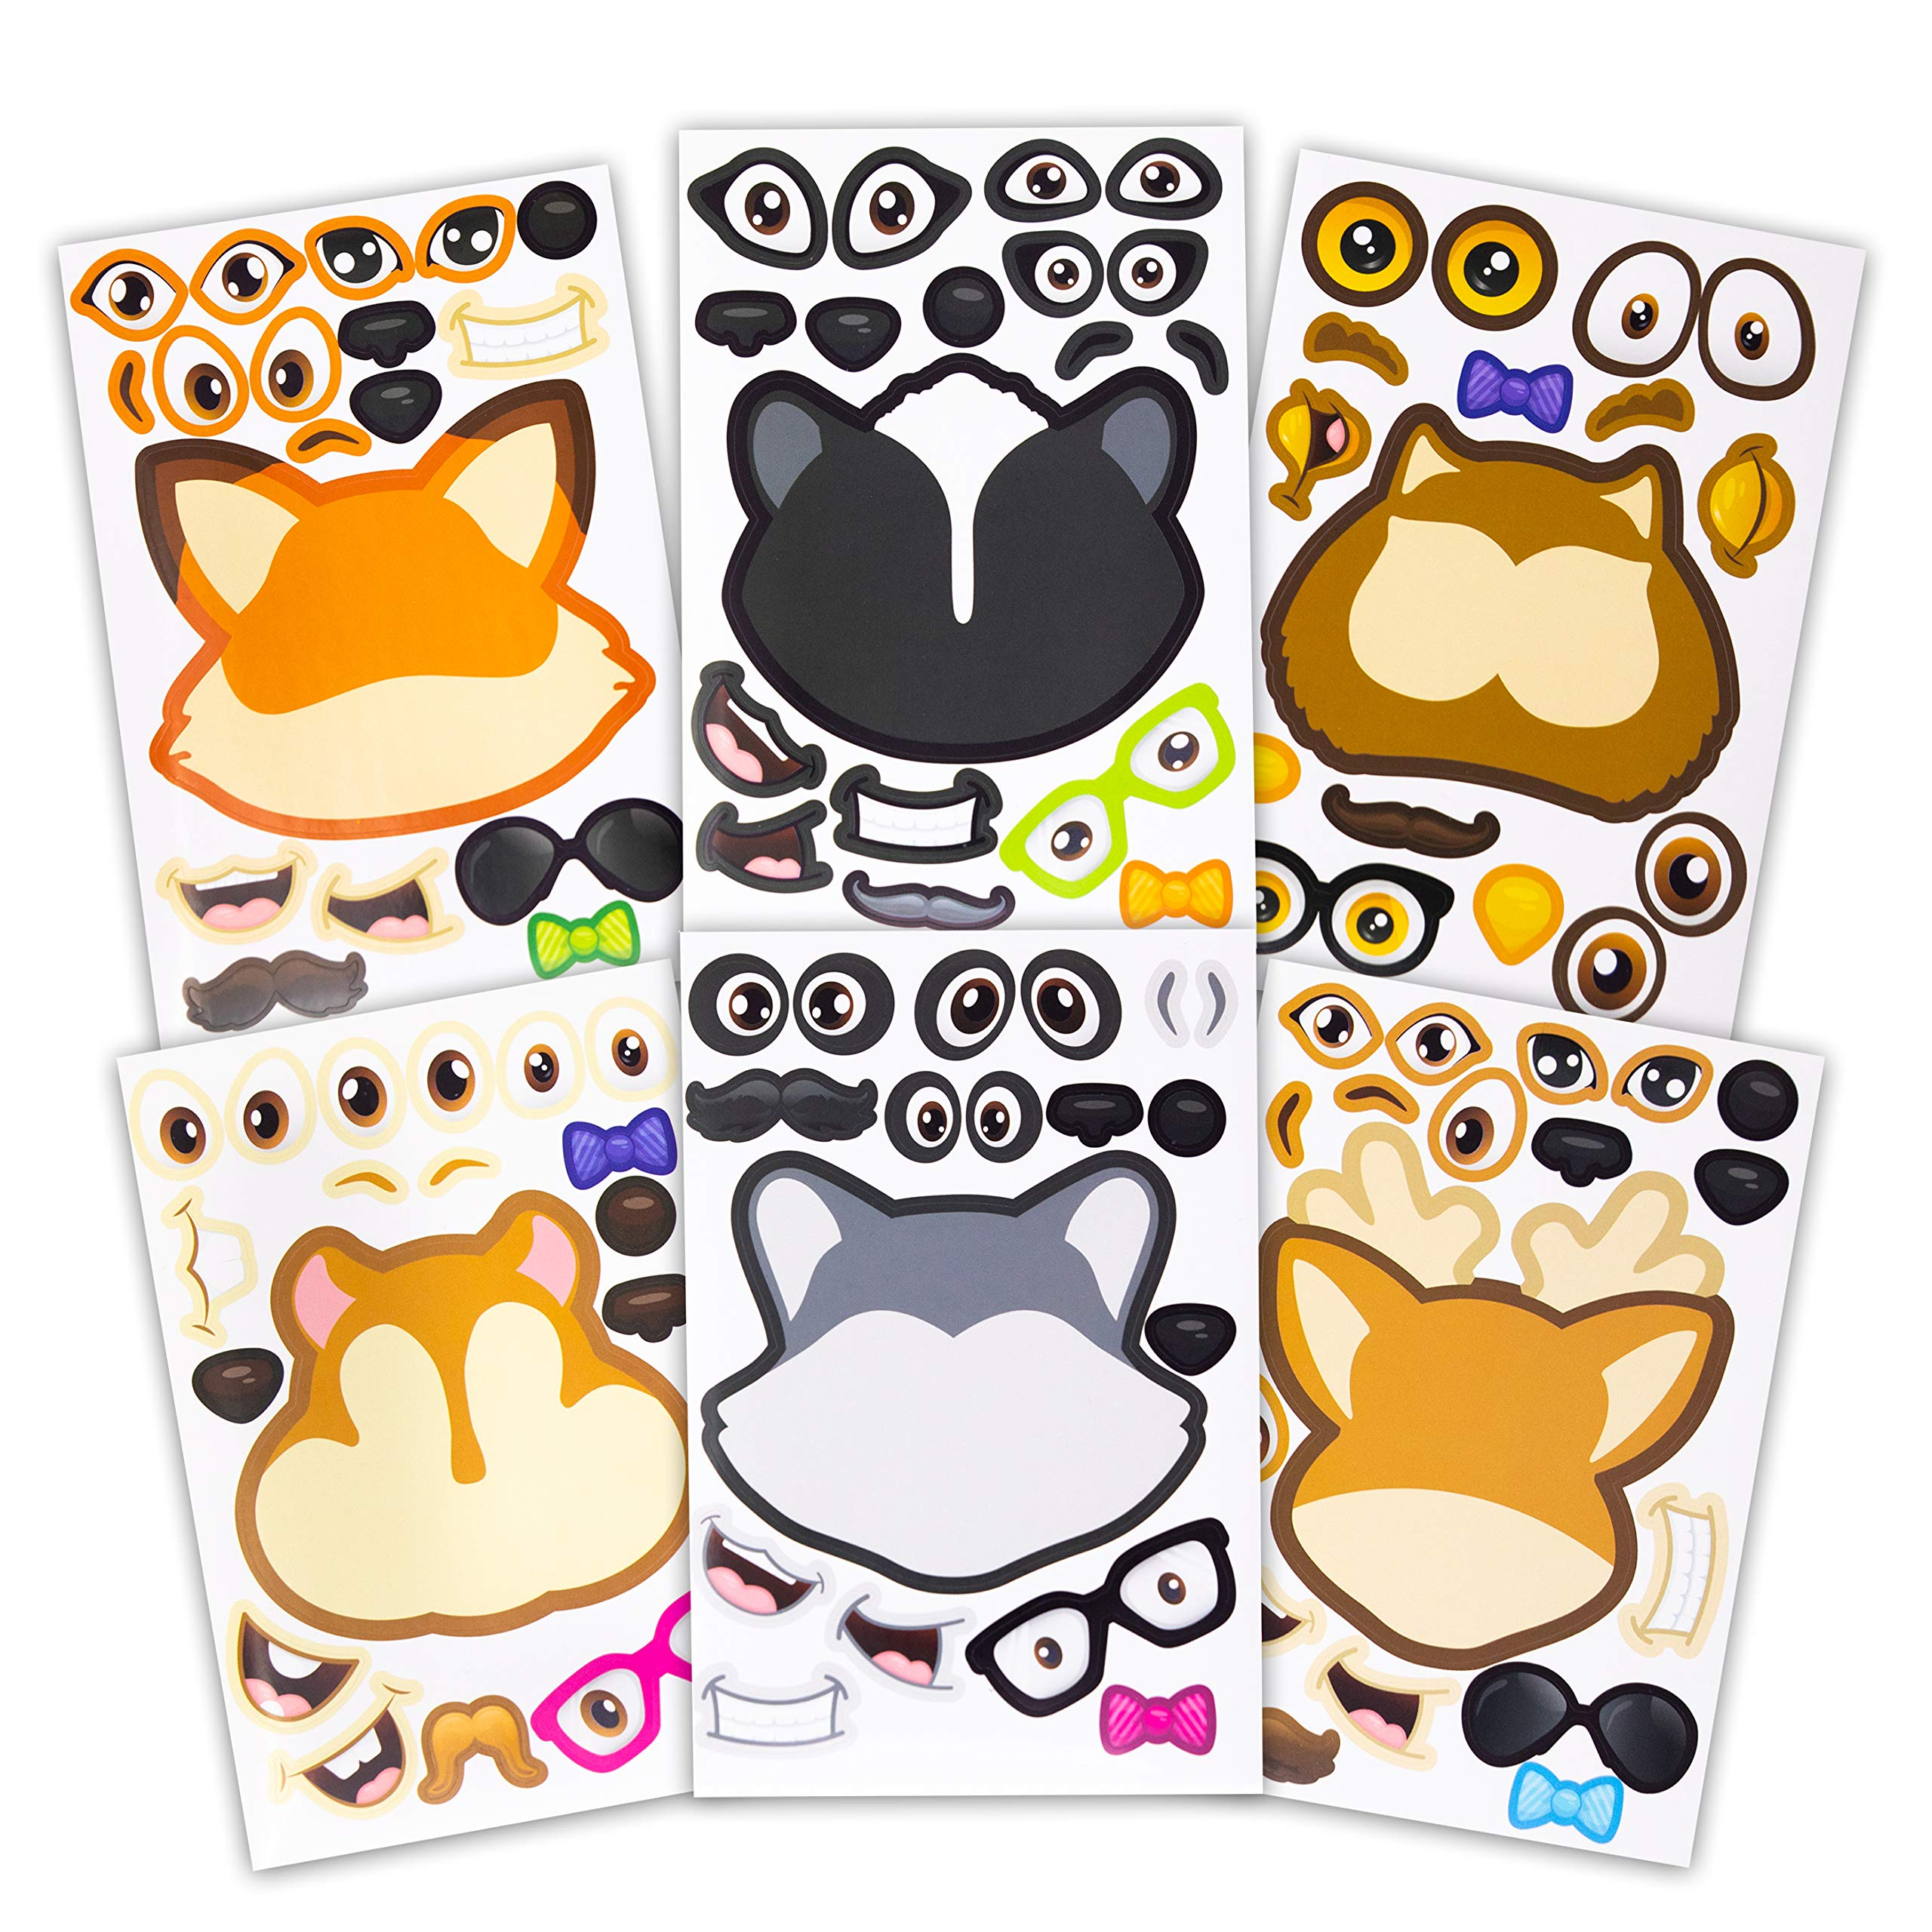 24 Make A Woodland Creatures Sticker Sheets - Fun Addition To Baby Shower Decorations & Birthday Party Supplies, Favors & Decor - Woodland Animals Include Fox, Owl, Chipmunk, Skunk, Deer, Raccoon